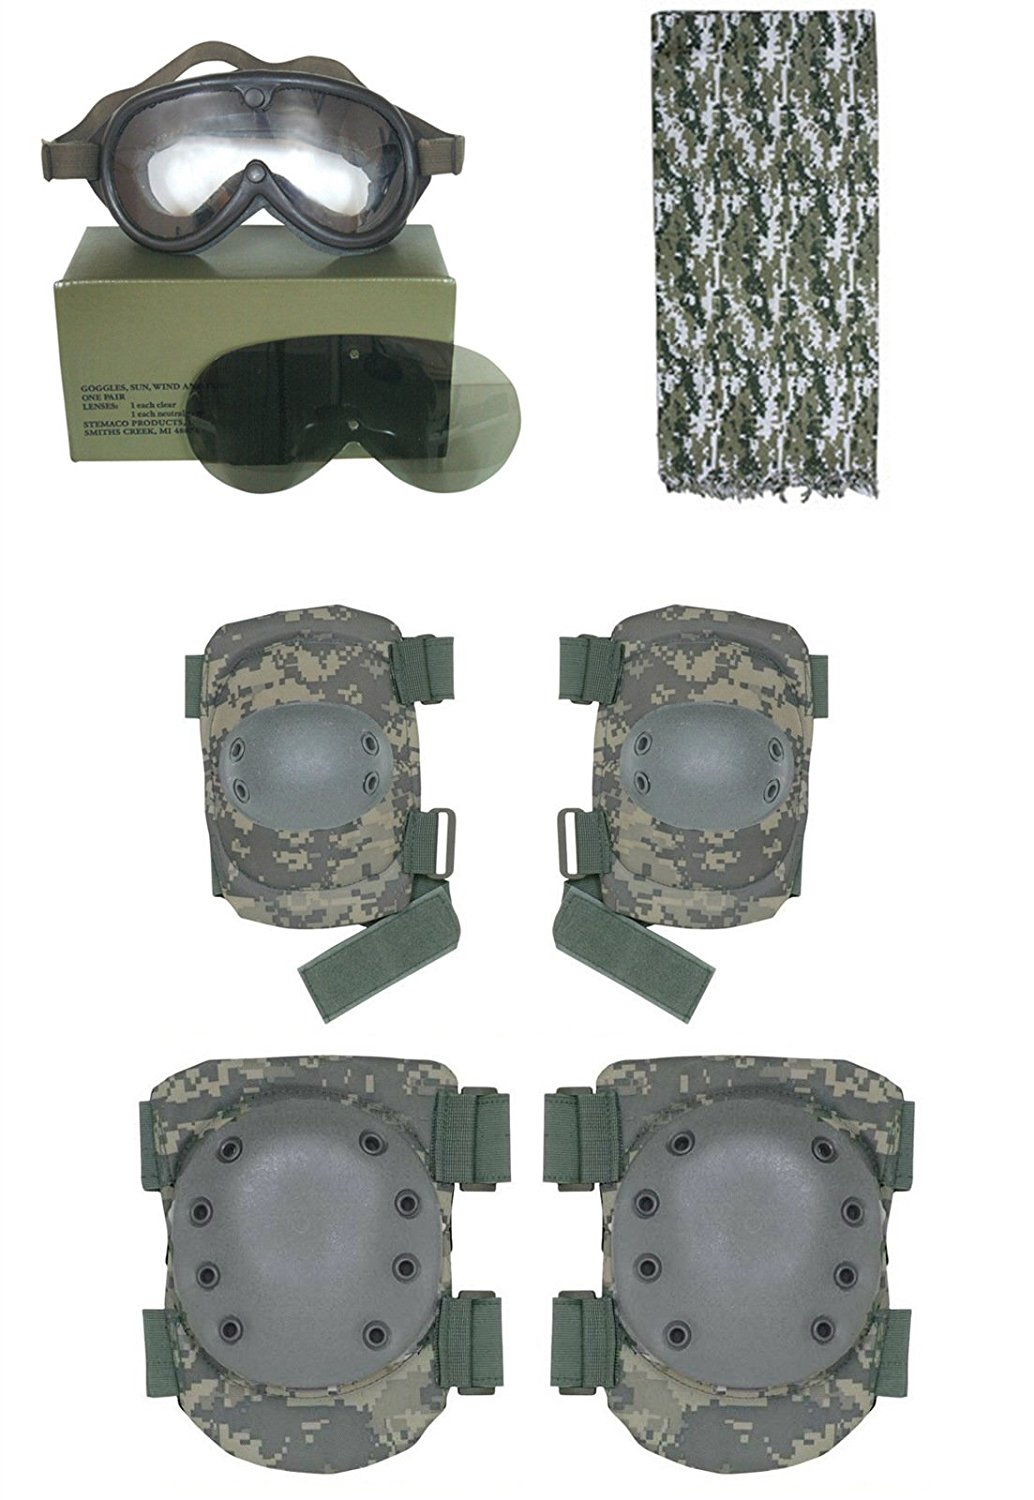 Tactical ACU Digital Shemagh + Ultimate Arms Gear Sun, Dust and Wind Goggles + ACU Digital Camo Hard Elbow and Knee Pads